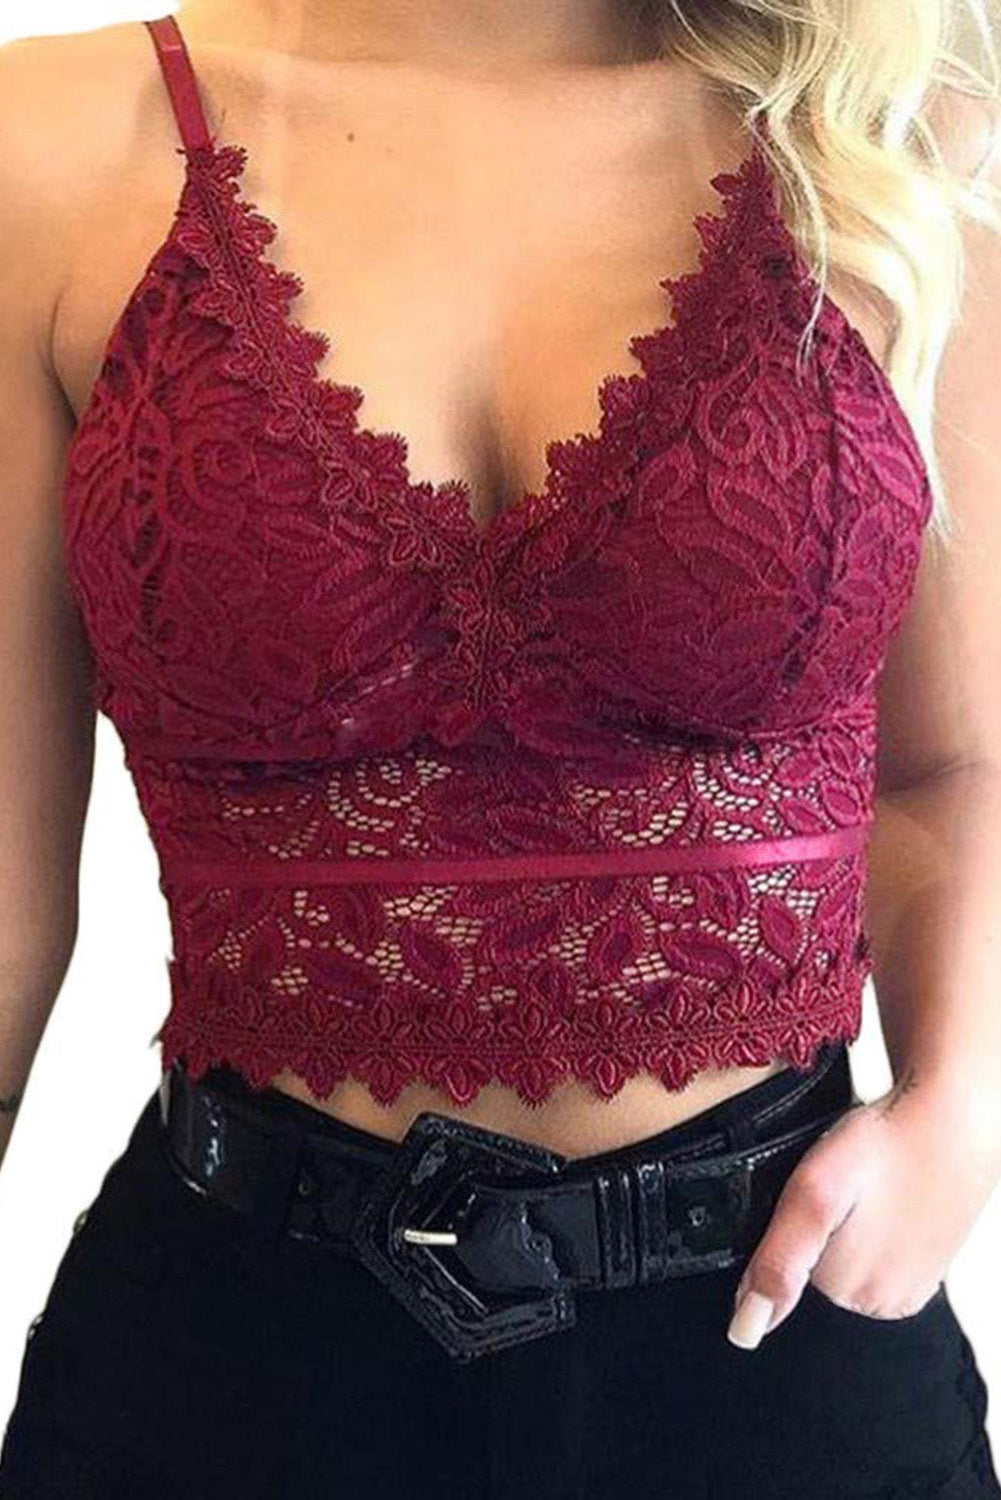 Red Deep V Lace Bralette Crop Top